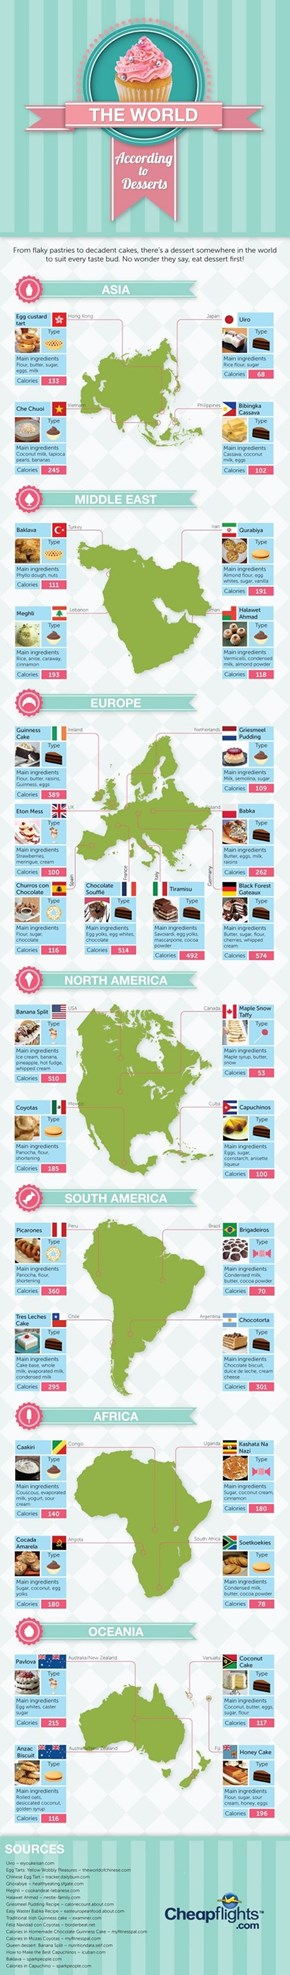 The World According To Desserts